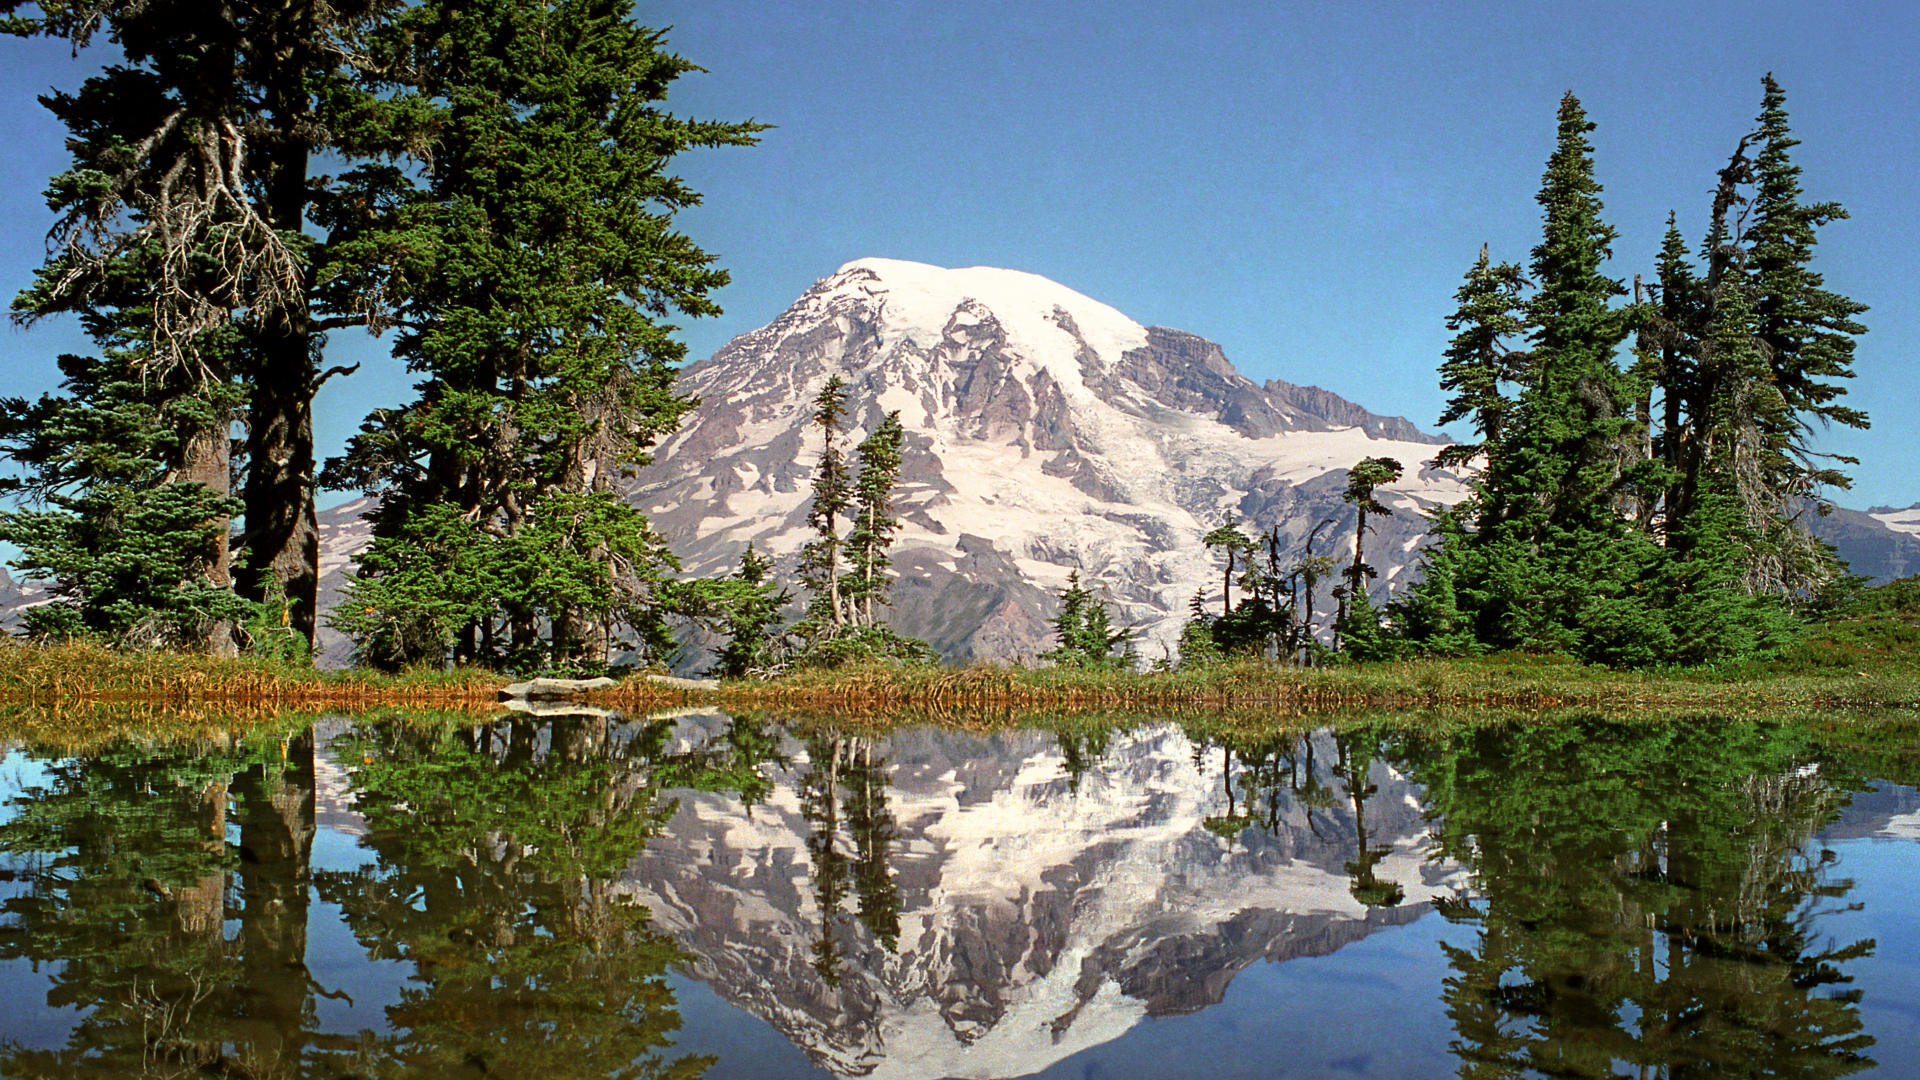 Wallpaper mount rainier national park mount rainier lake reflection 1920x1080